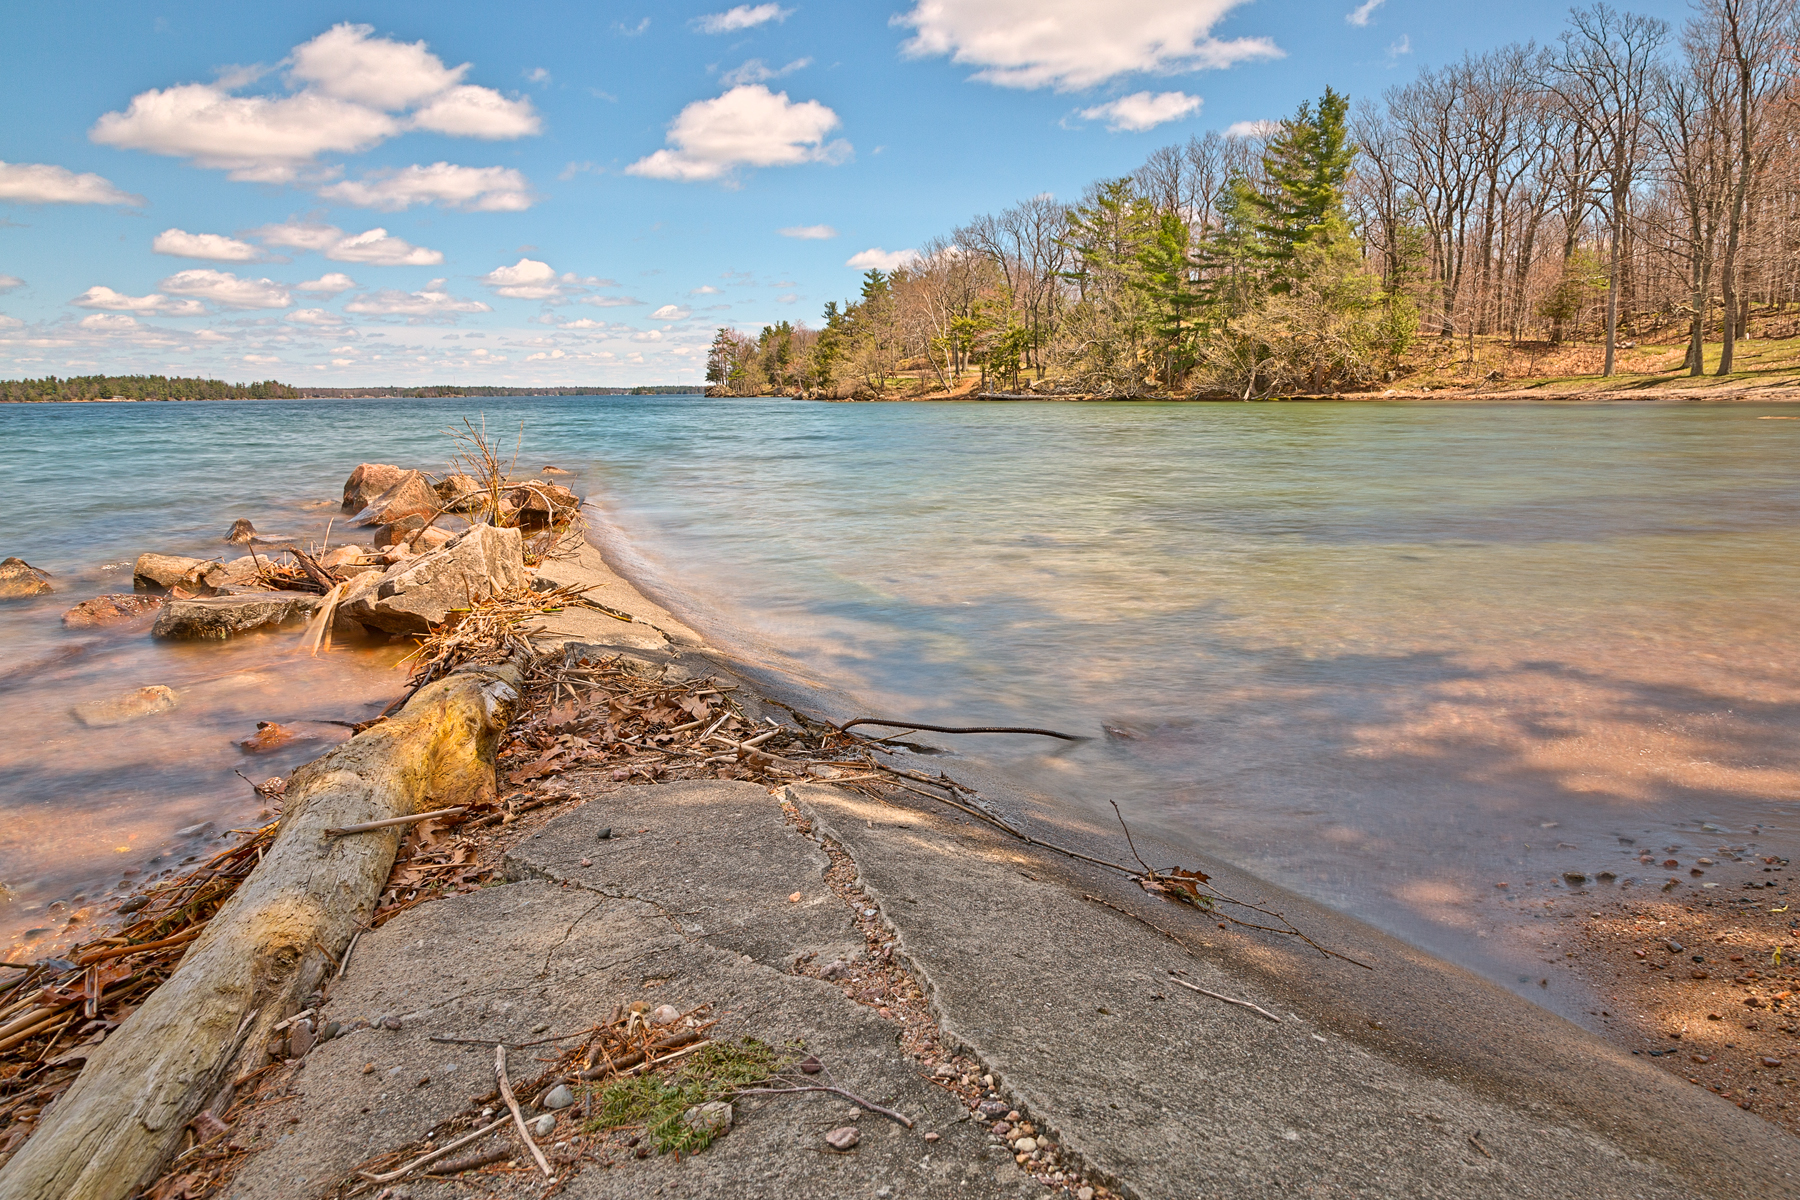 Wellesley island state park - hdr photo